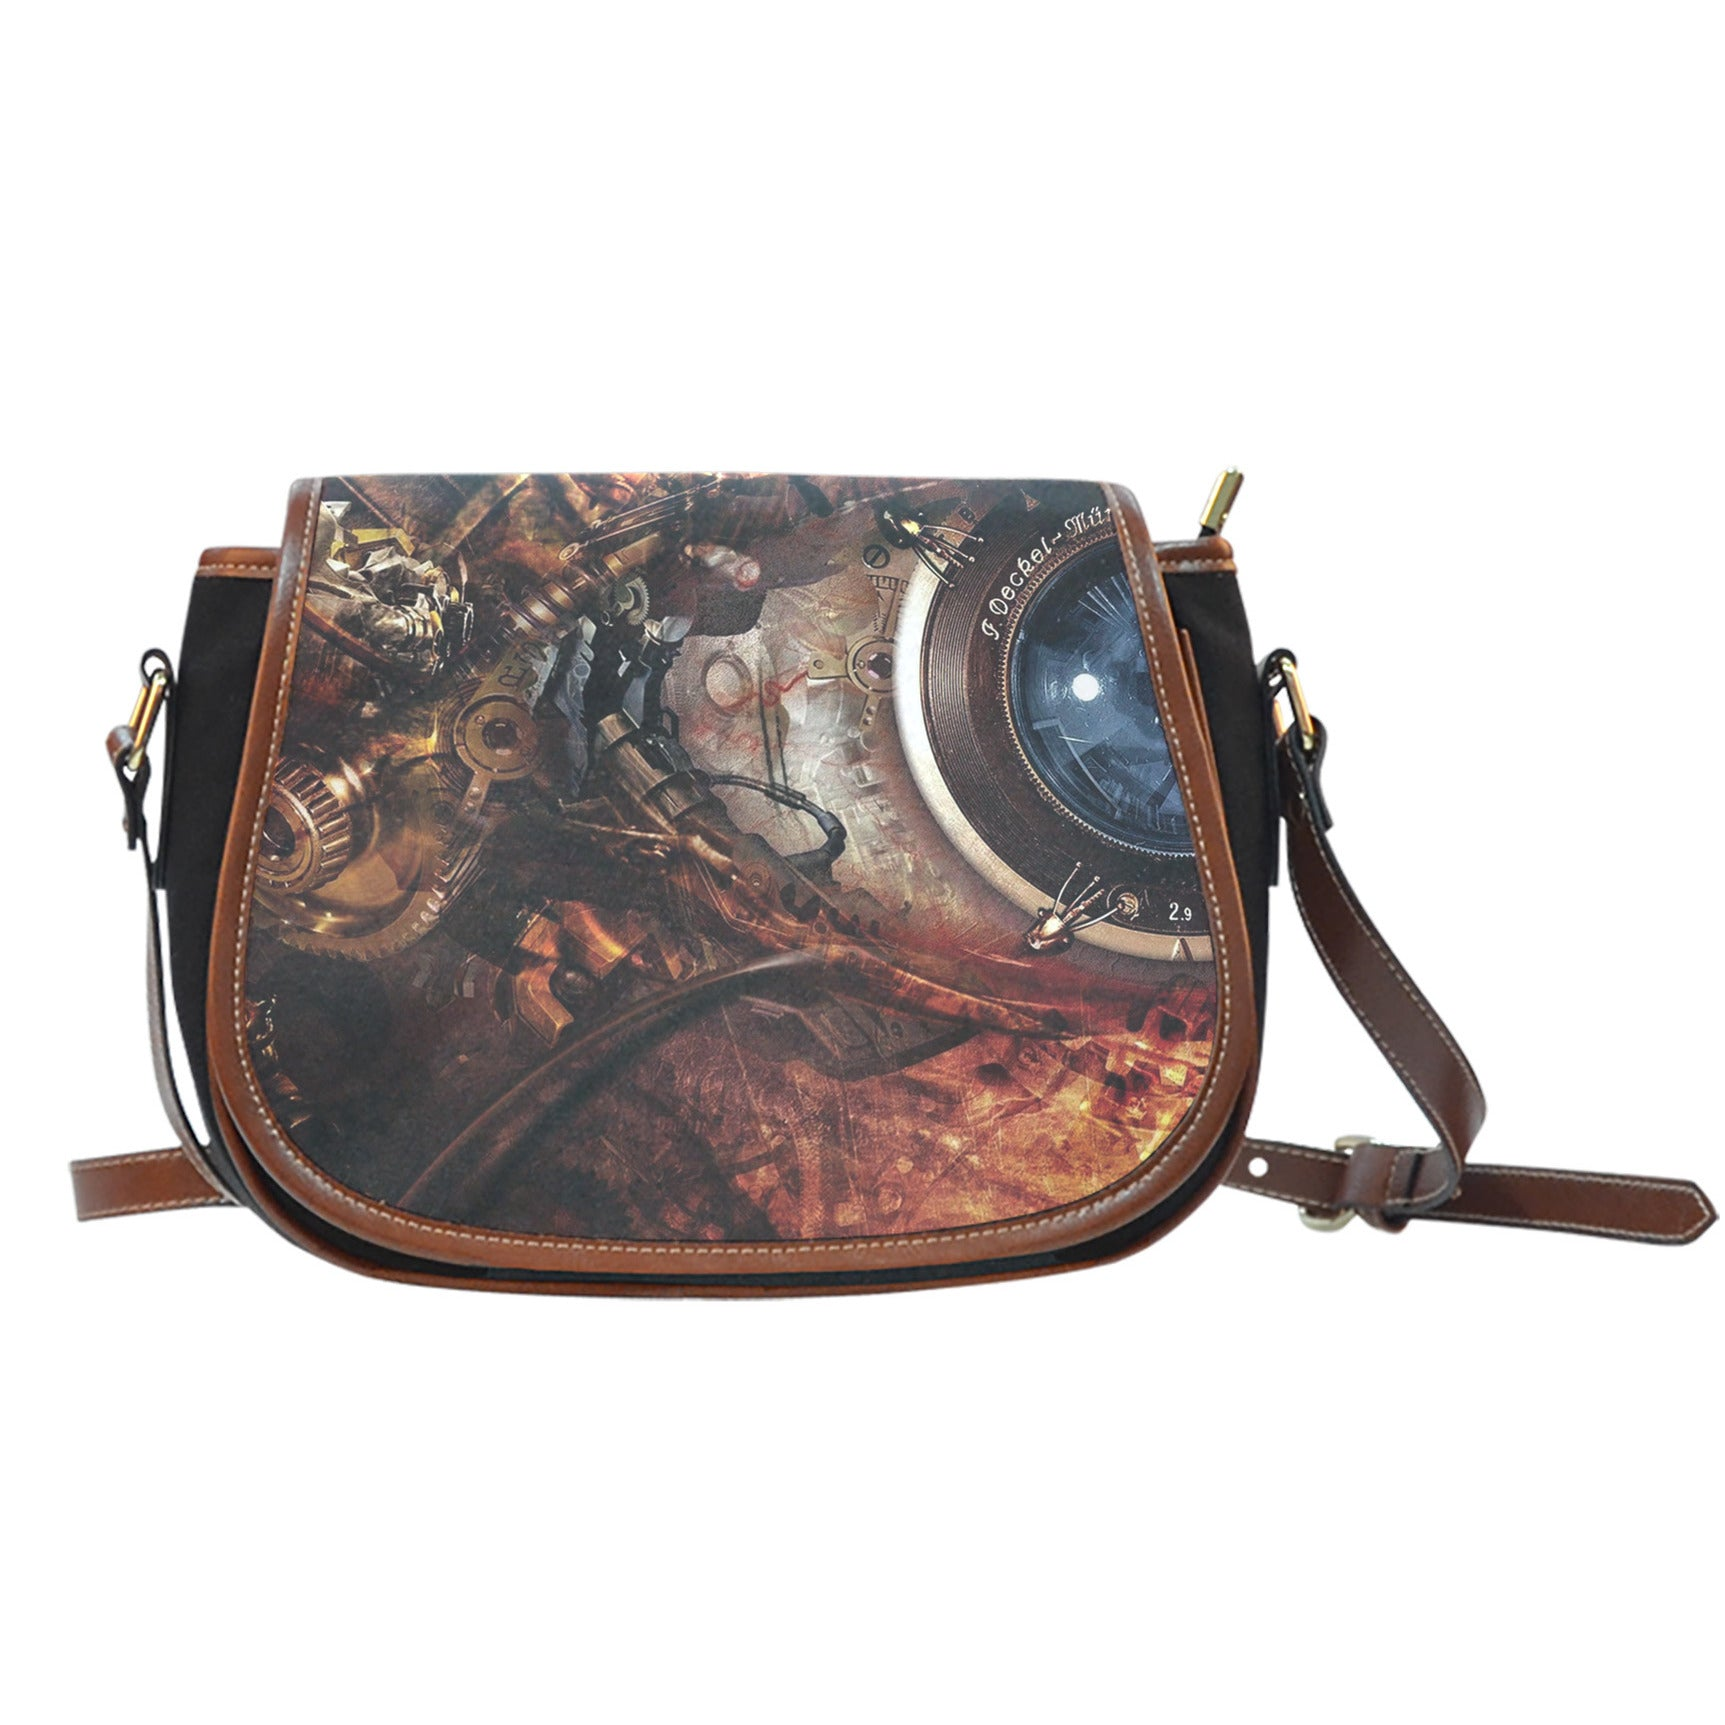 Steampunk II Saddle Bag